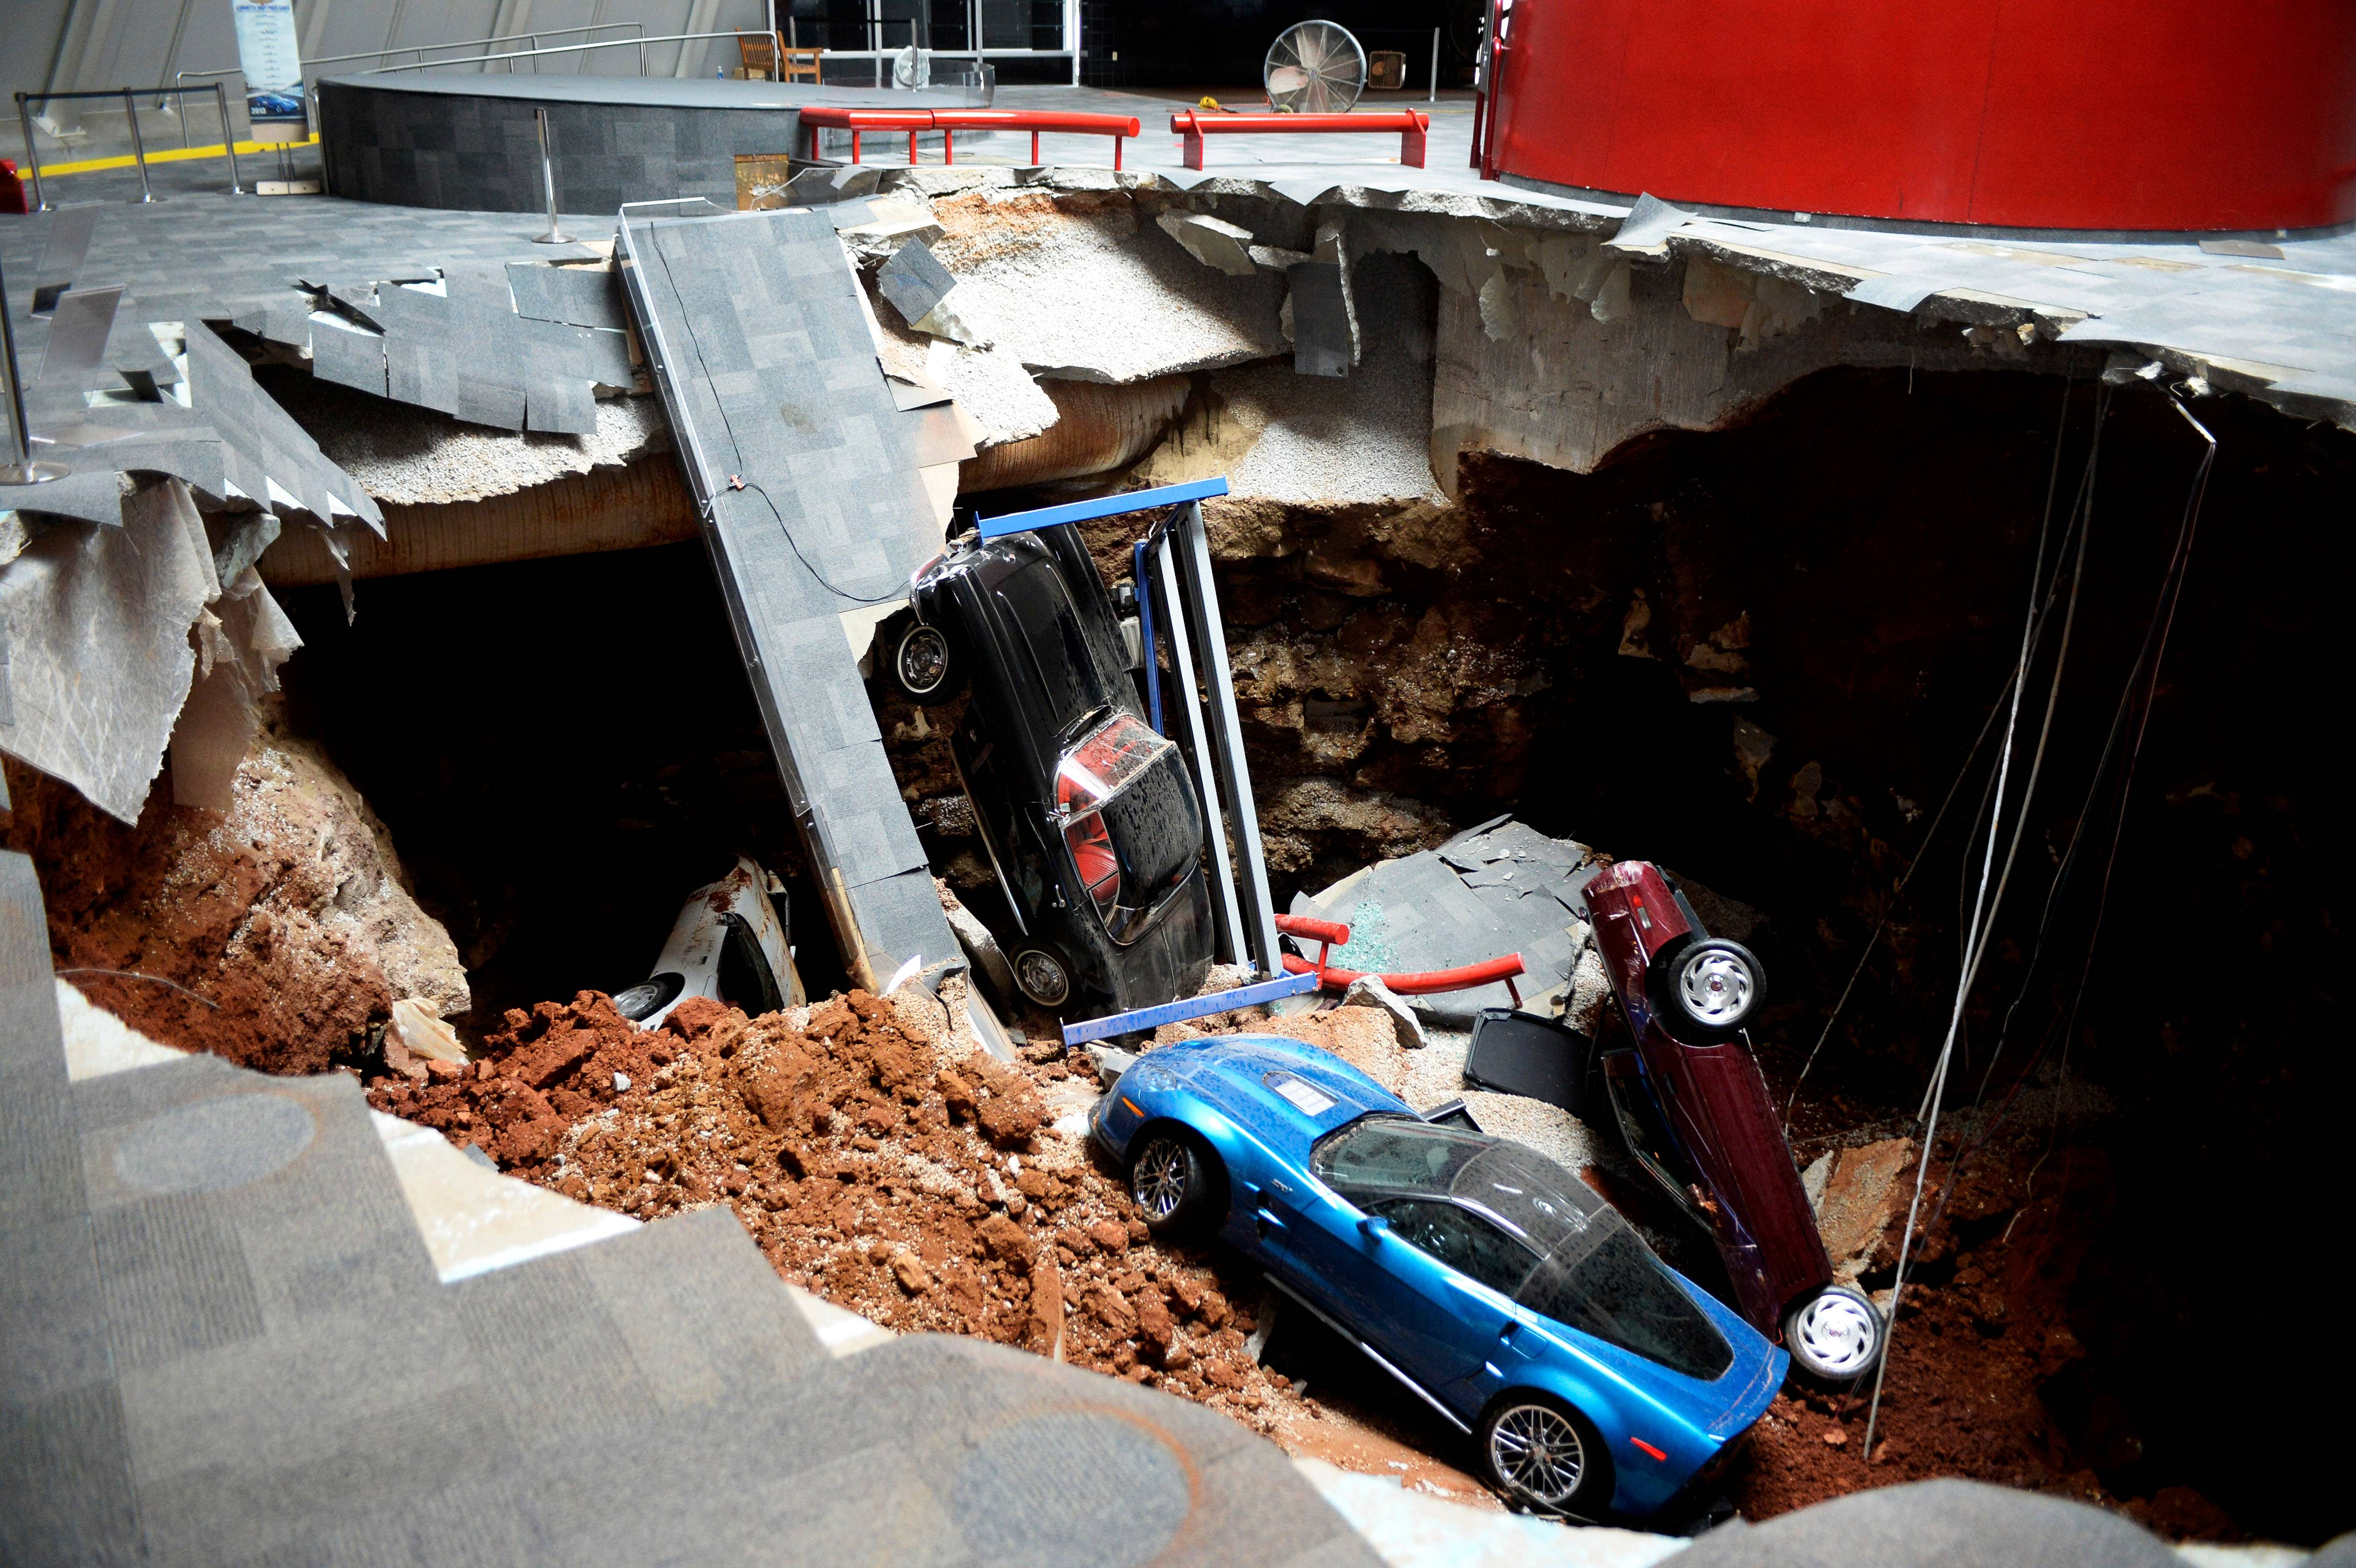 Prized cars lie in a sinkhole that opened up in the National Corvette Museum in Bowling Green, Ky., on Feb. 12. The sinkhole that swallowed eight cars at the has become such an attraction that officials want to preserve it.